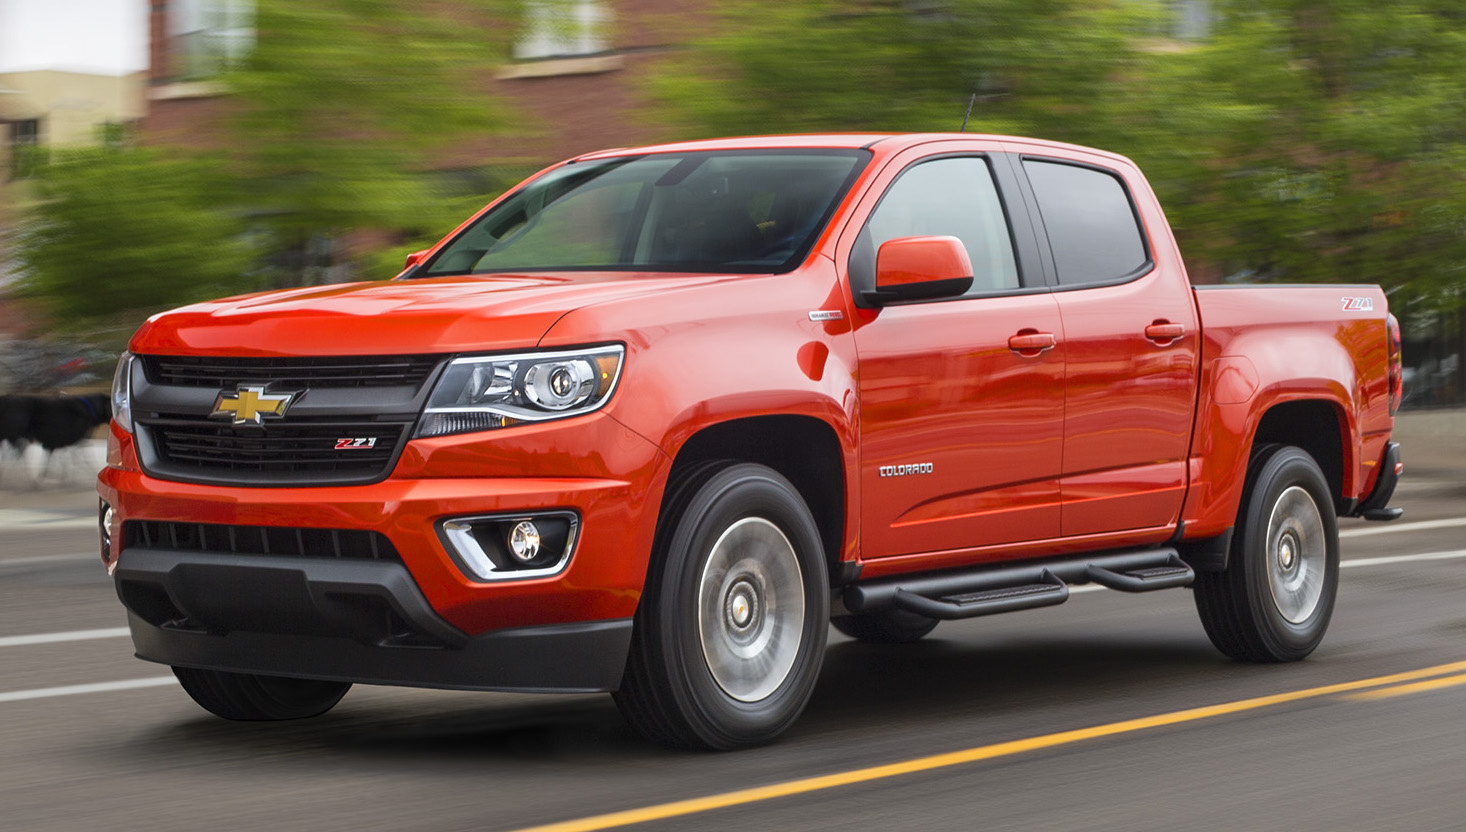 2016 Chevrolet Colorado - Review - CarGurus